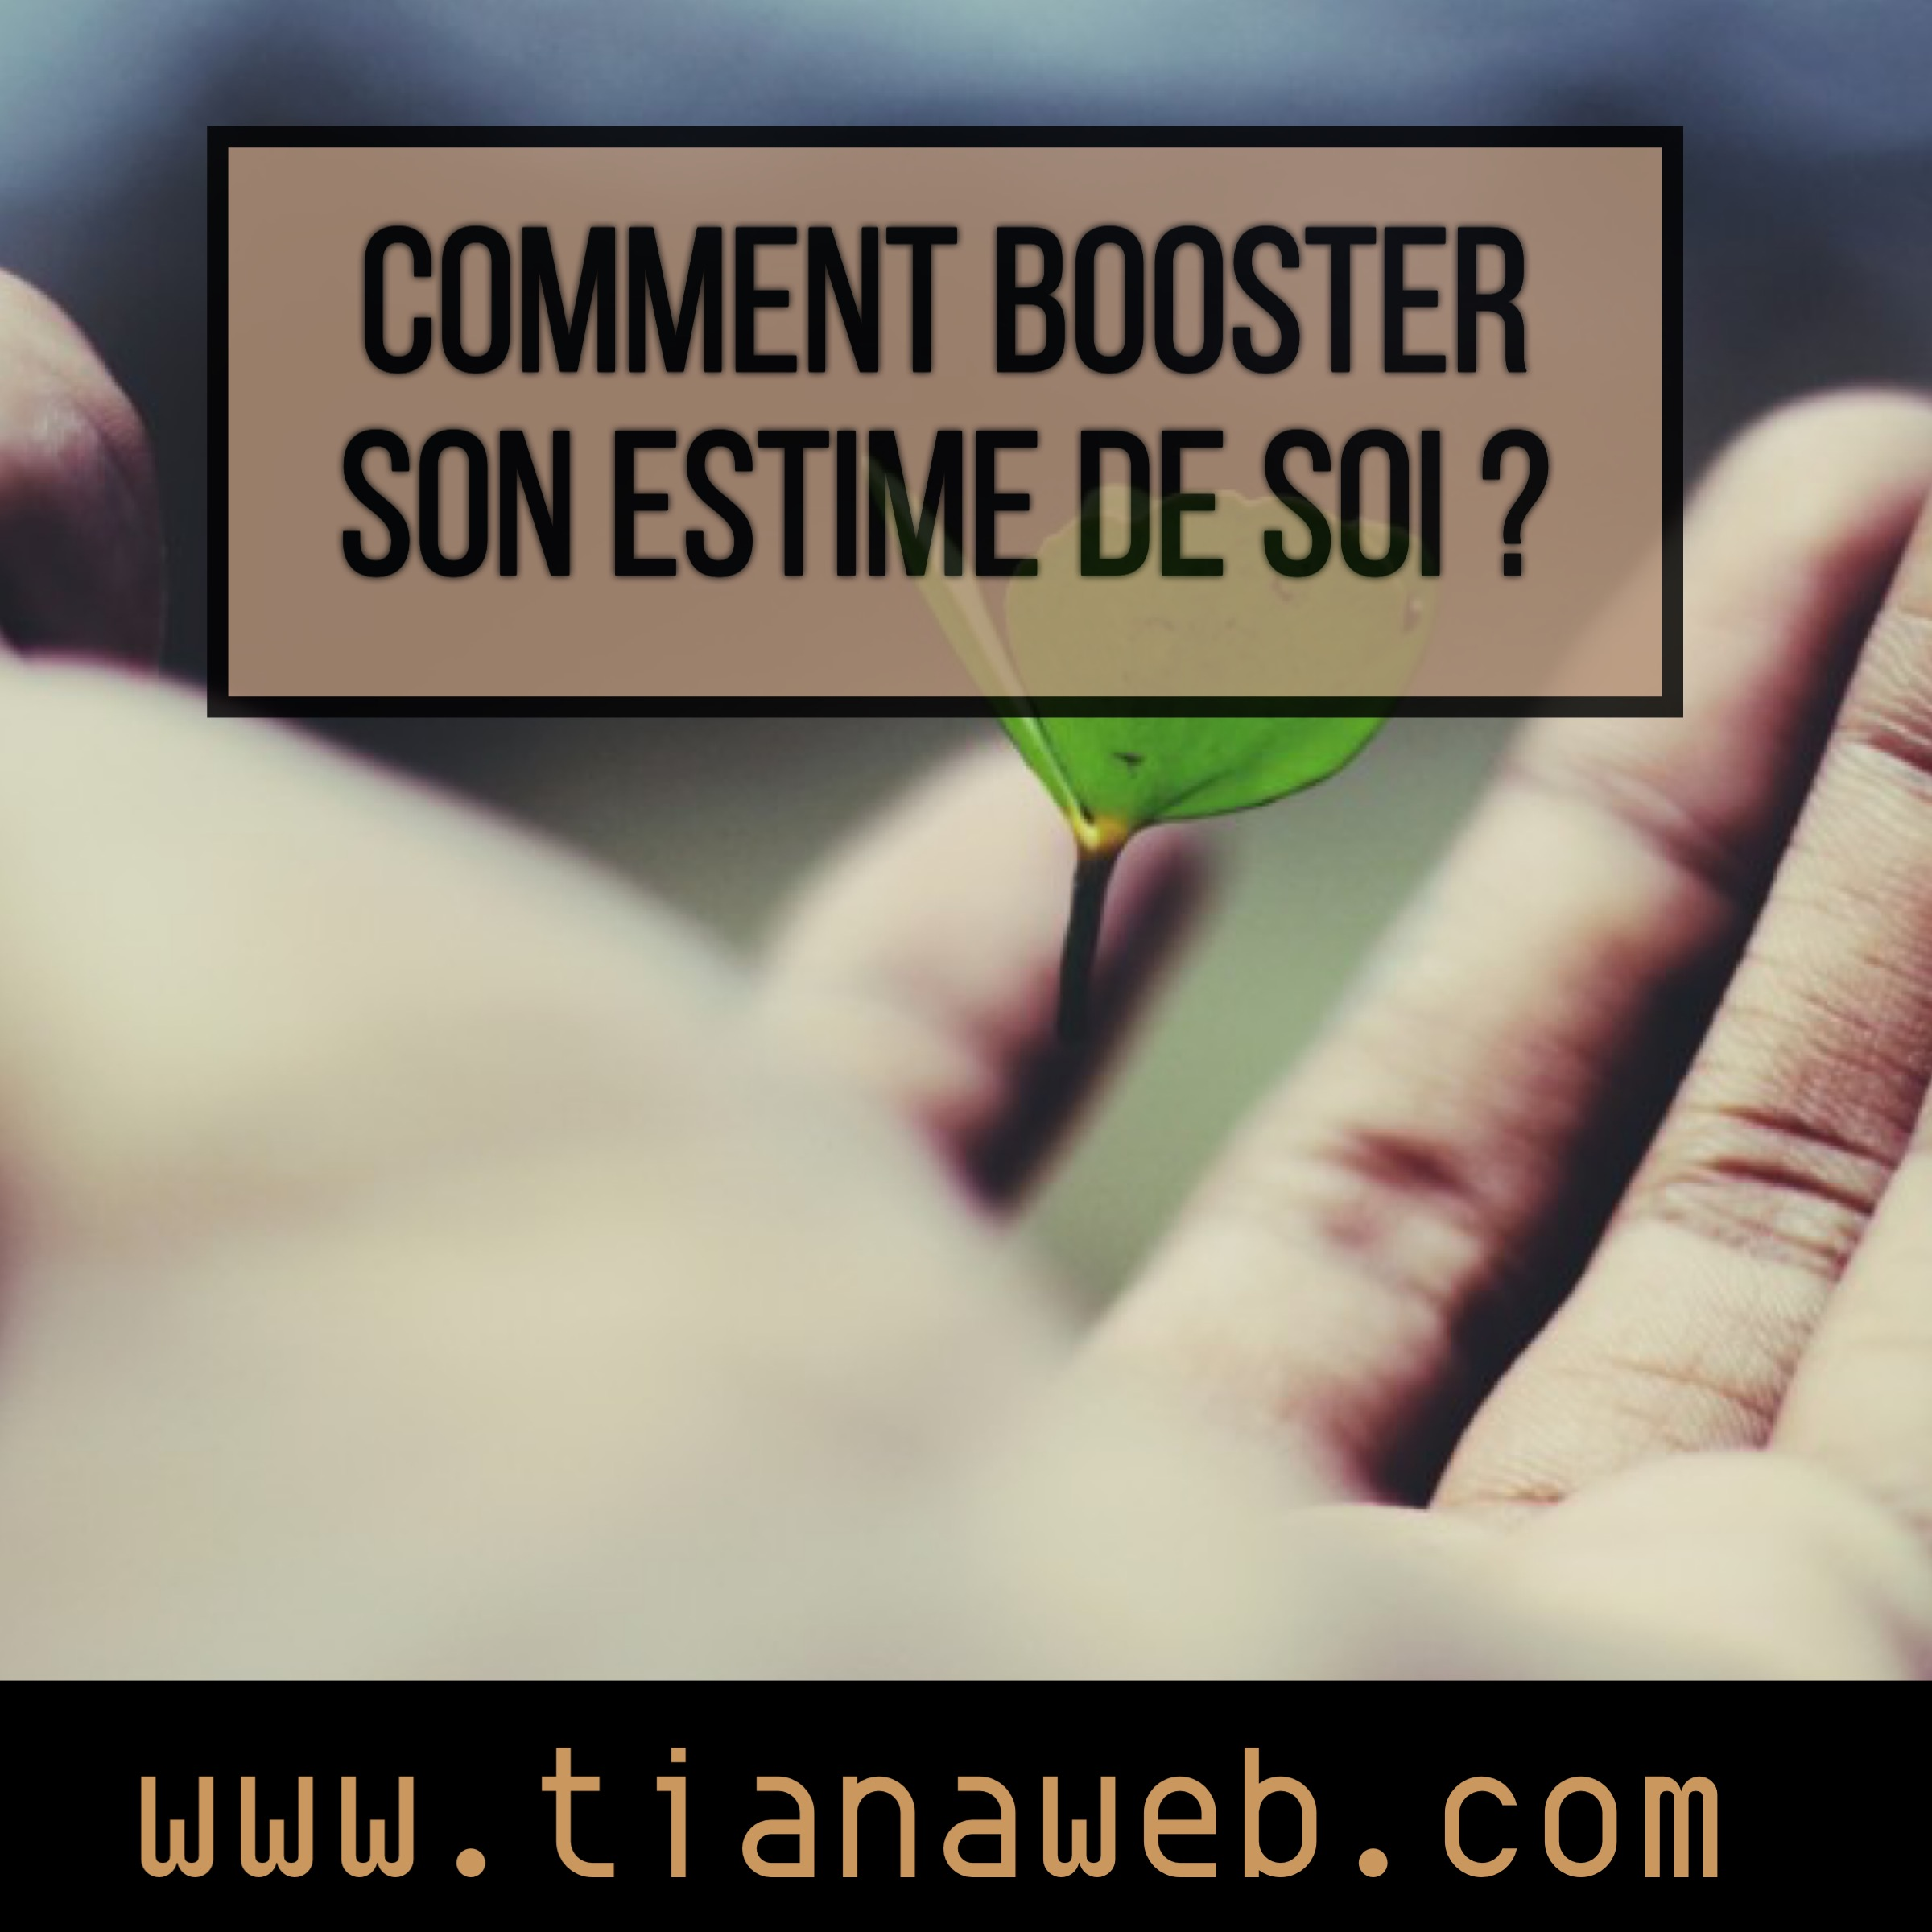 comment_booster_son_estime_de_soi